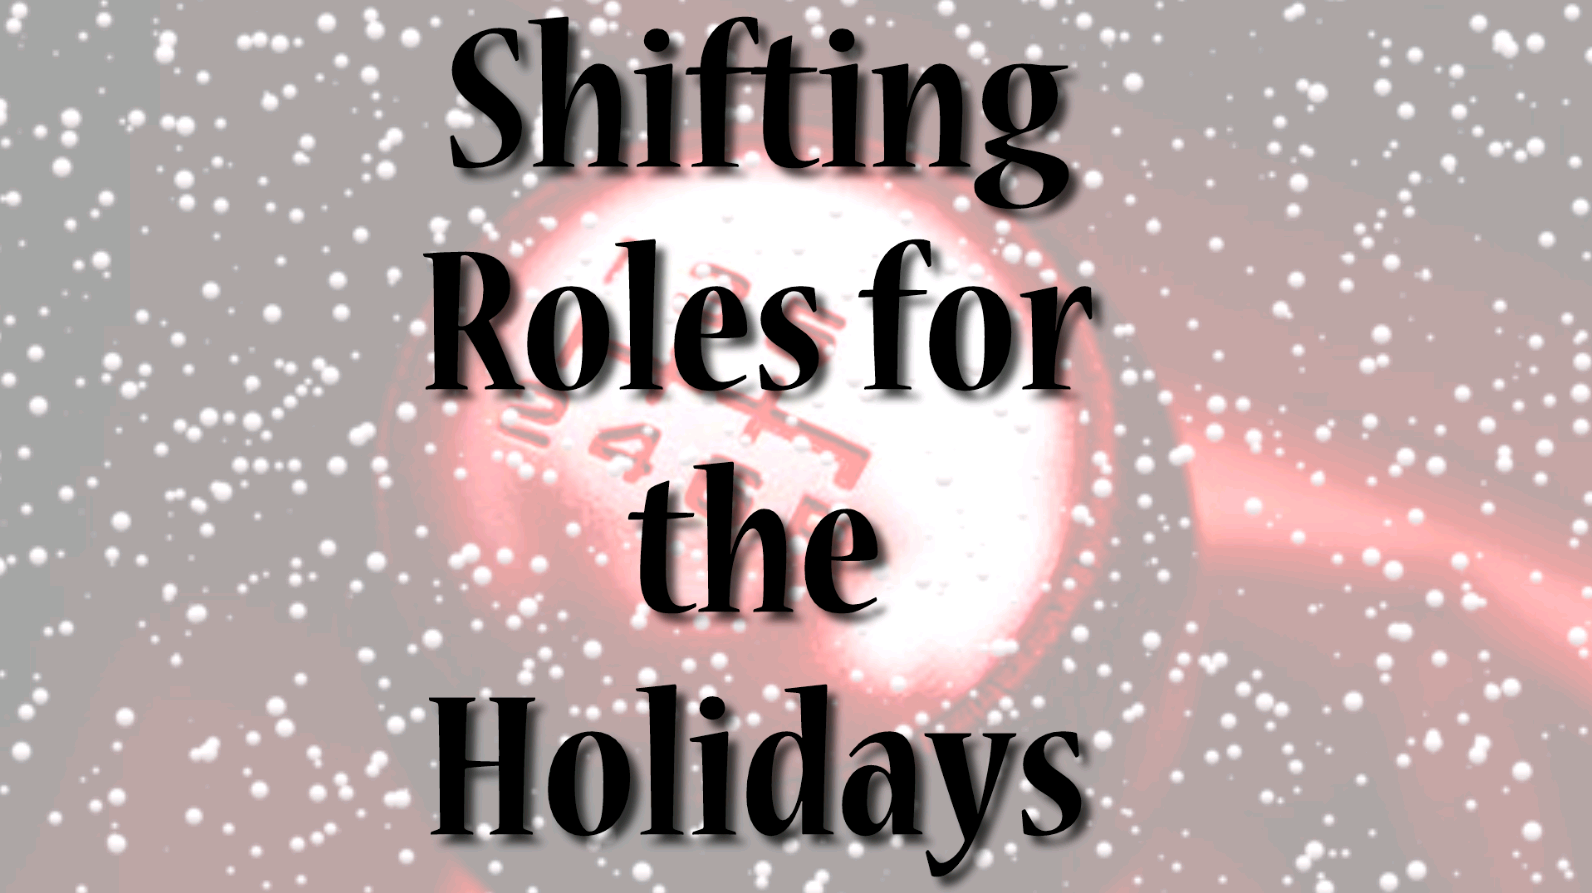 Shifting Roles For The Holidays